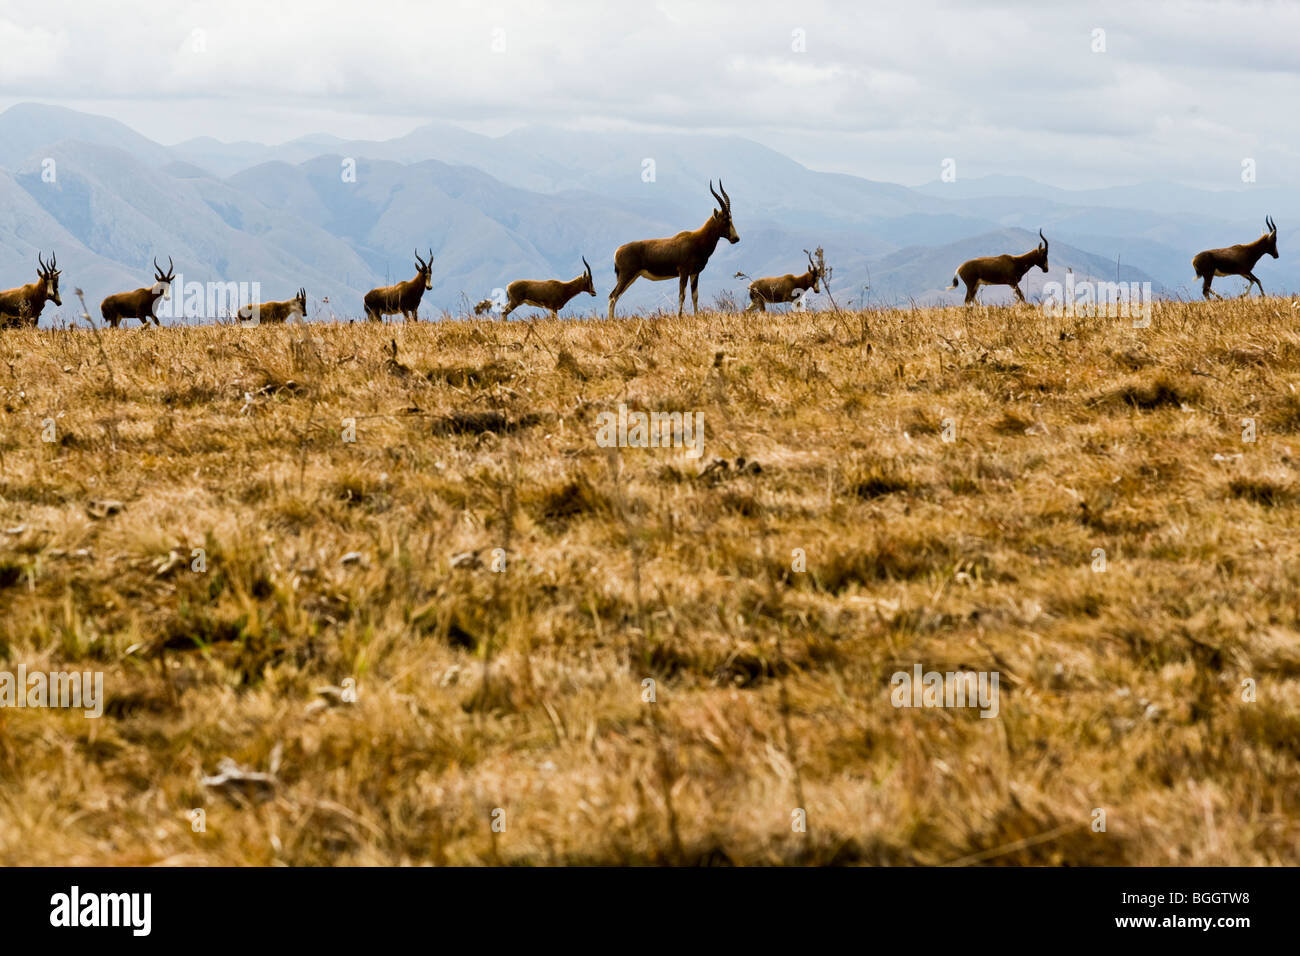 Blesbok herd in the mountains of Swaziland Stock Photo